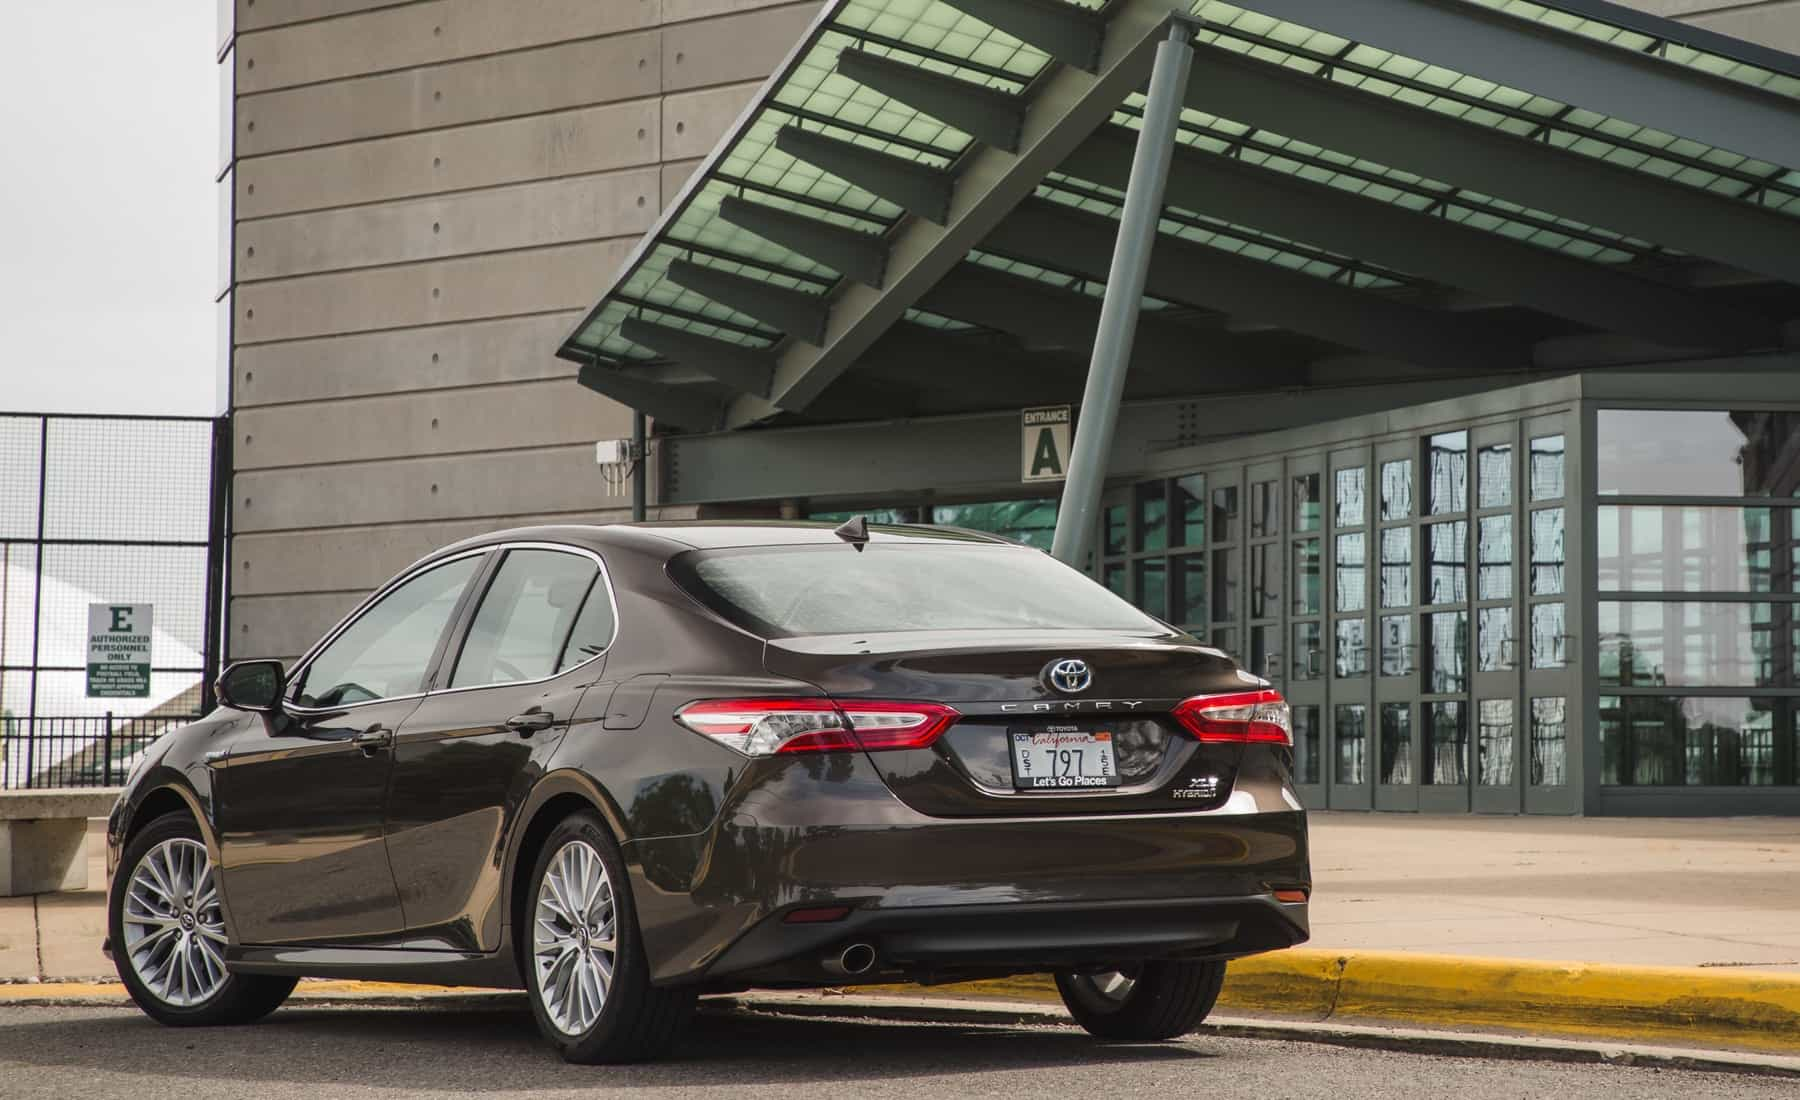 2018 Toyota Camry Hybrid XLE Exterior Rear And Side View (Photo 37 of 41)